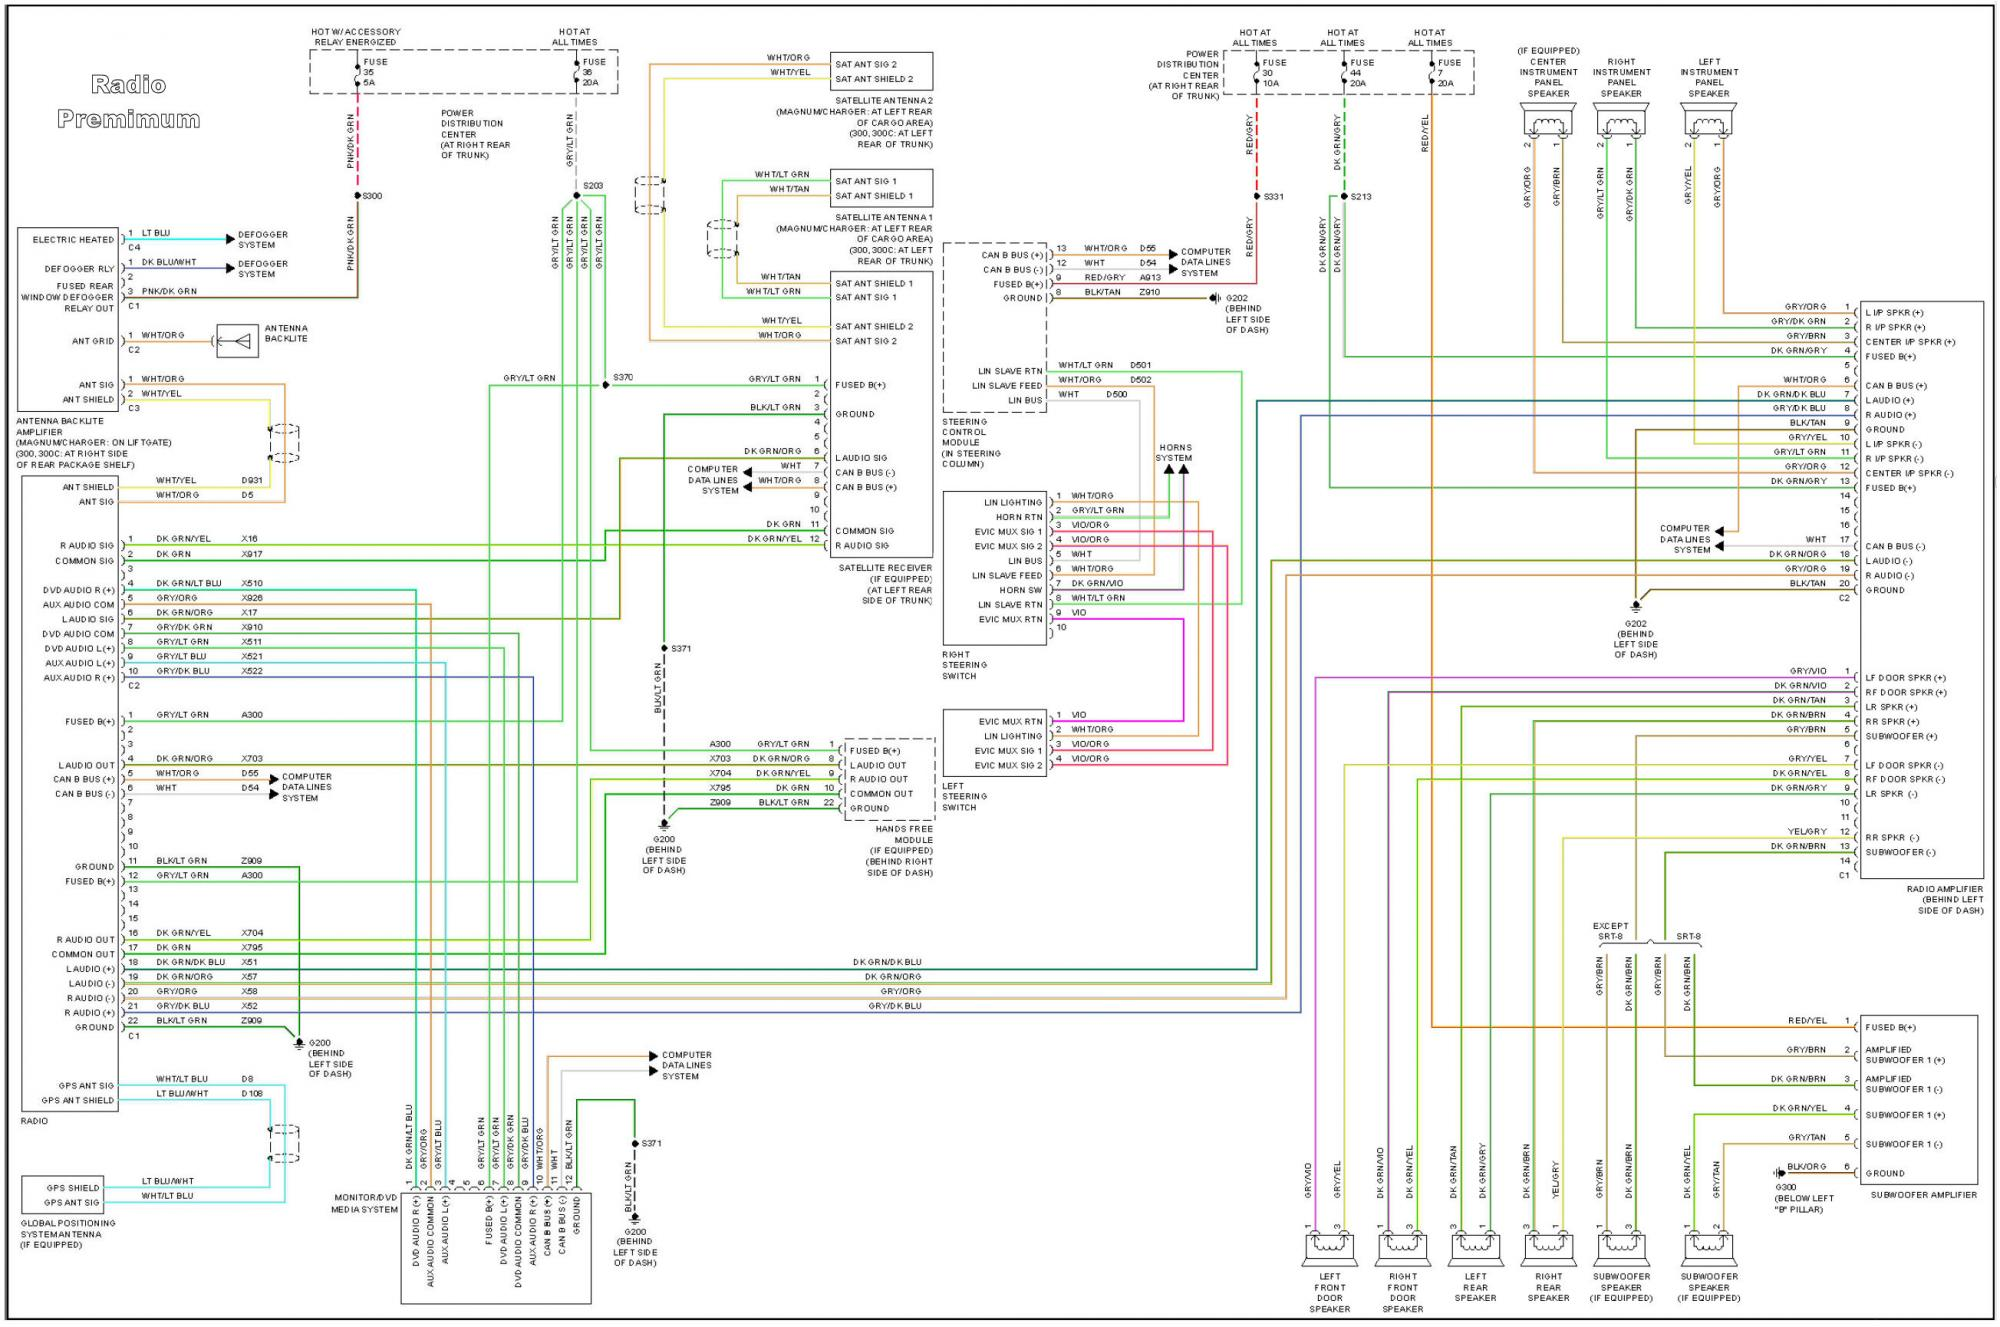 DIAGRAM] Dodge Charger Factory Radio Wiring Diagram FULL Version HD Quality Wiring  Diagram - RITUALDIAGRAMS.DOMENICANIPISTOIA.IT | 2015 Dodge Charger Radio Wiring Diagram |  | ritualdiagrams.domenicanipistoia.it